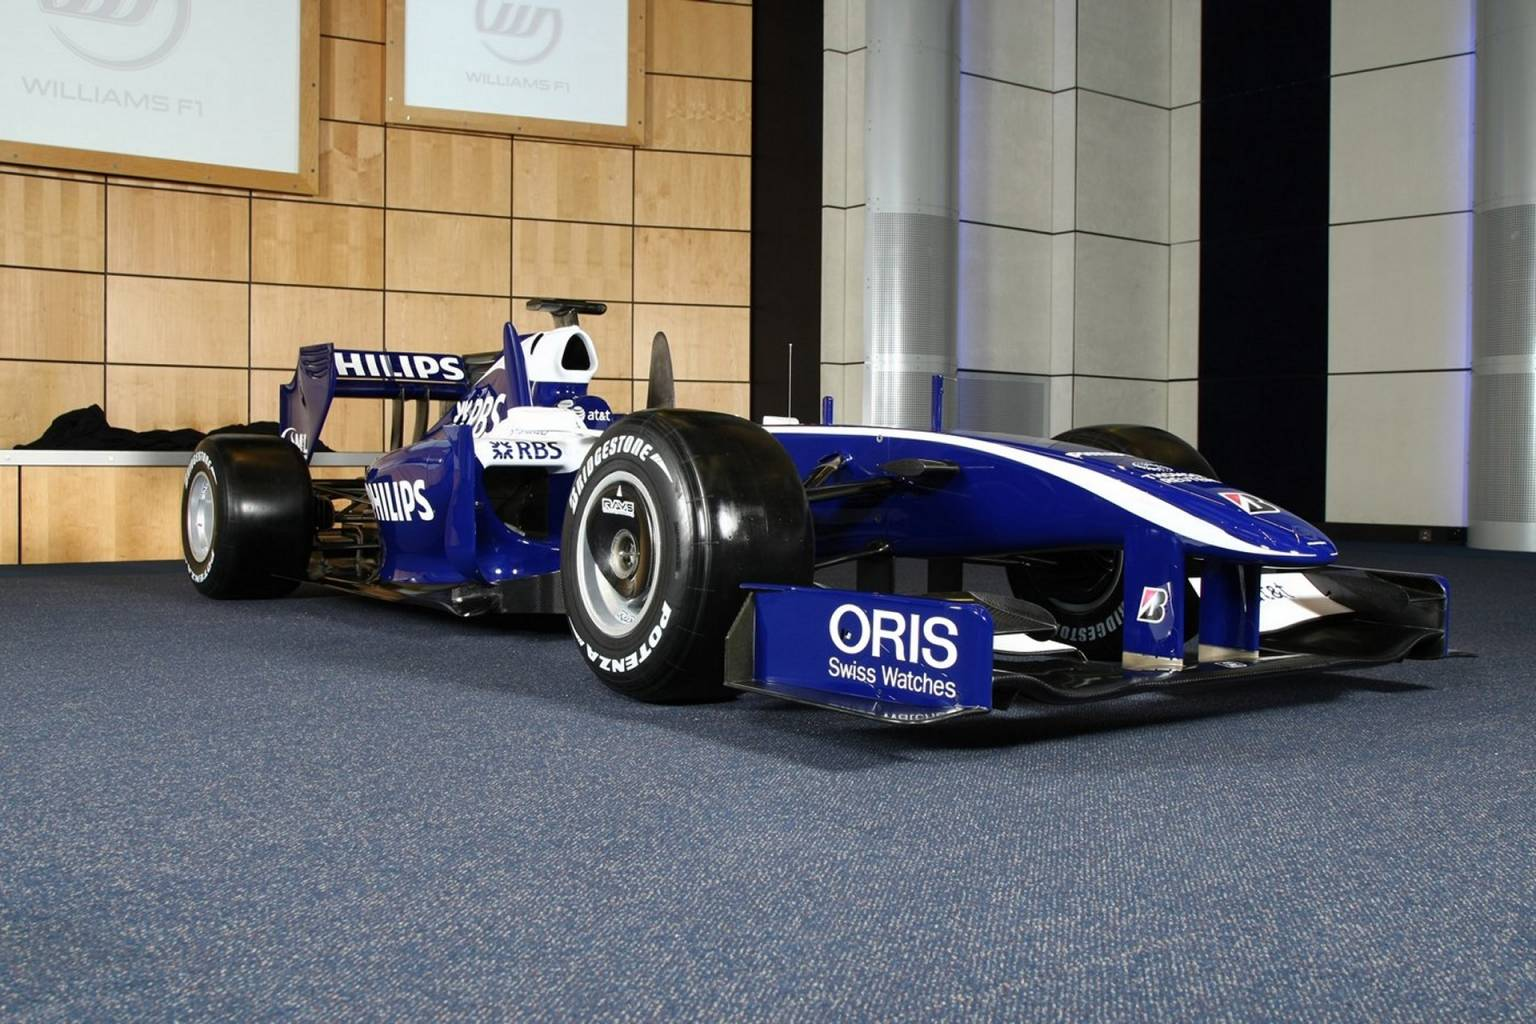 Williams fw31 photo - 6